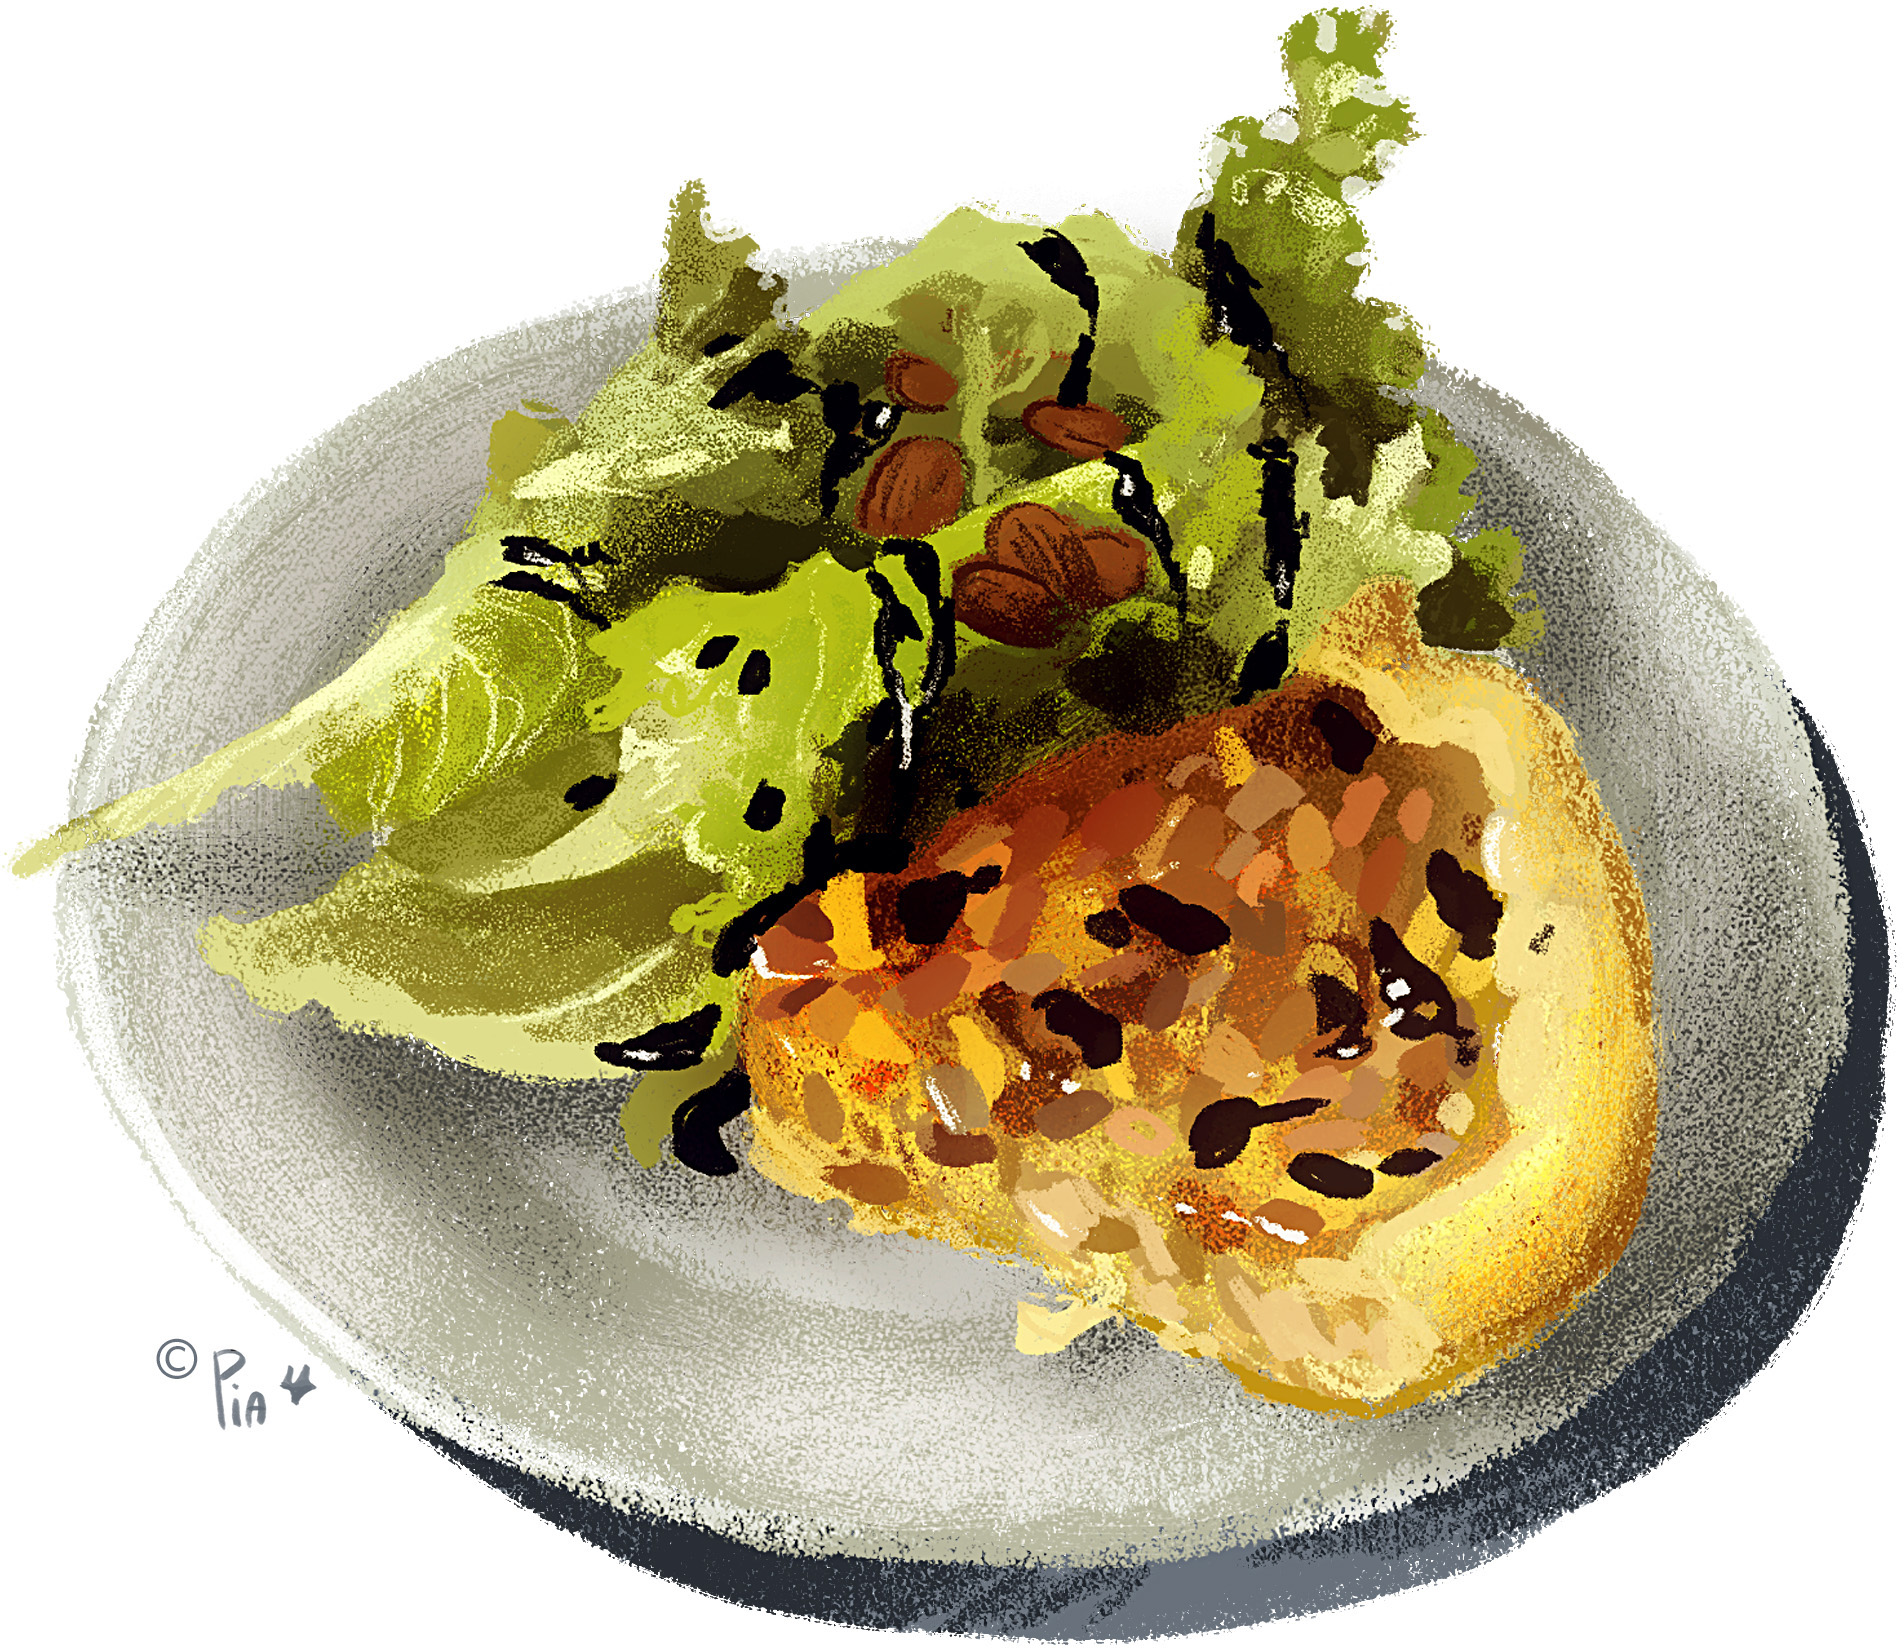 a plate with a leek pie and a salad